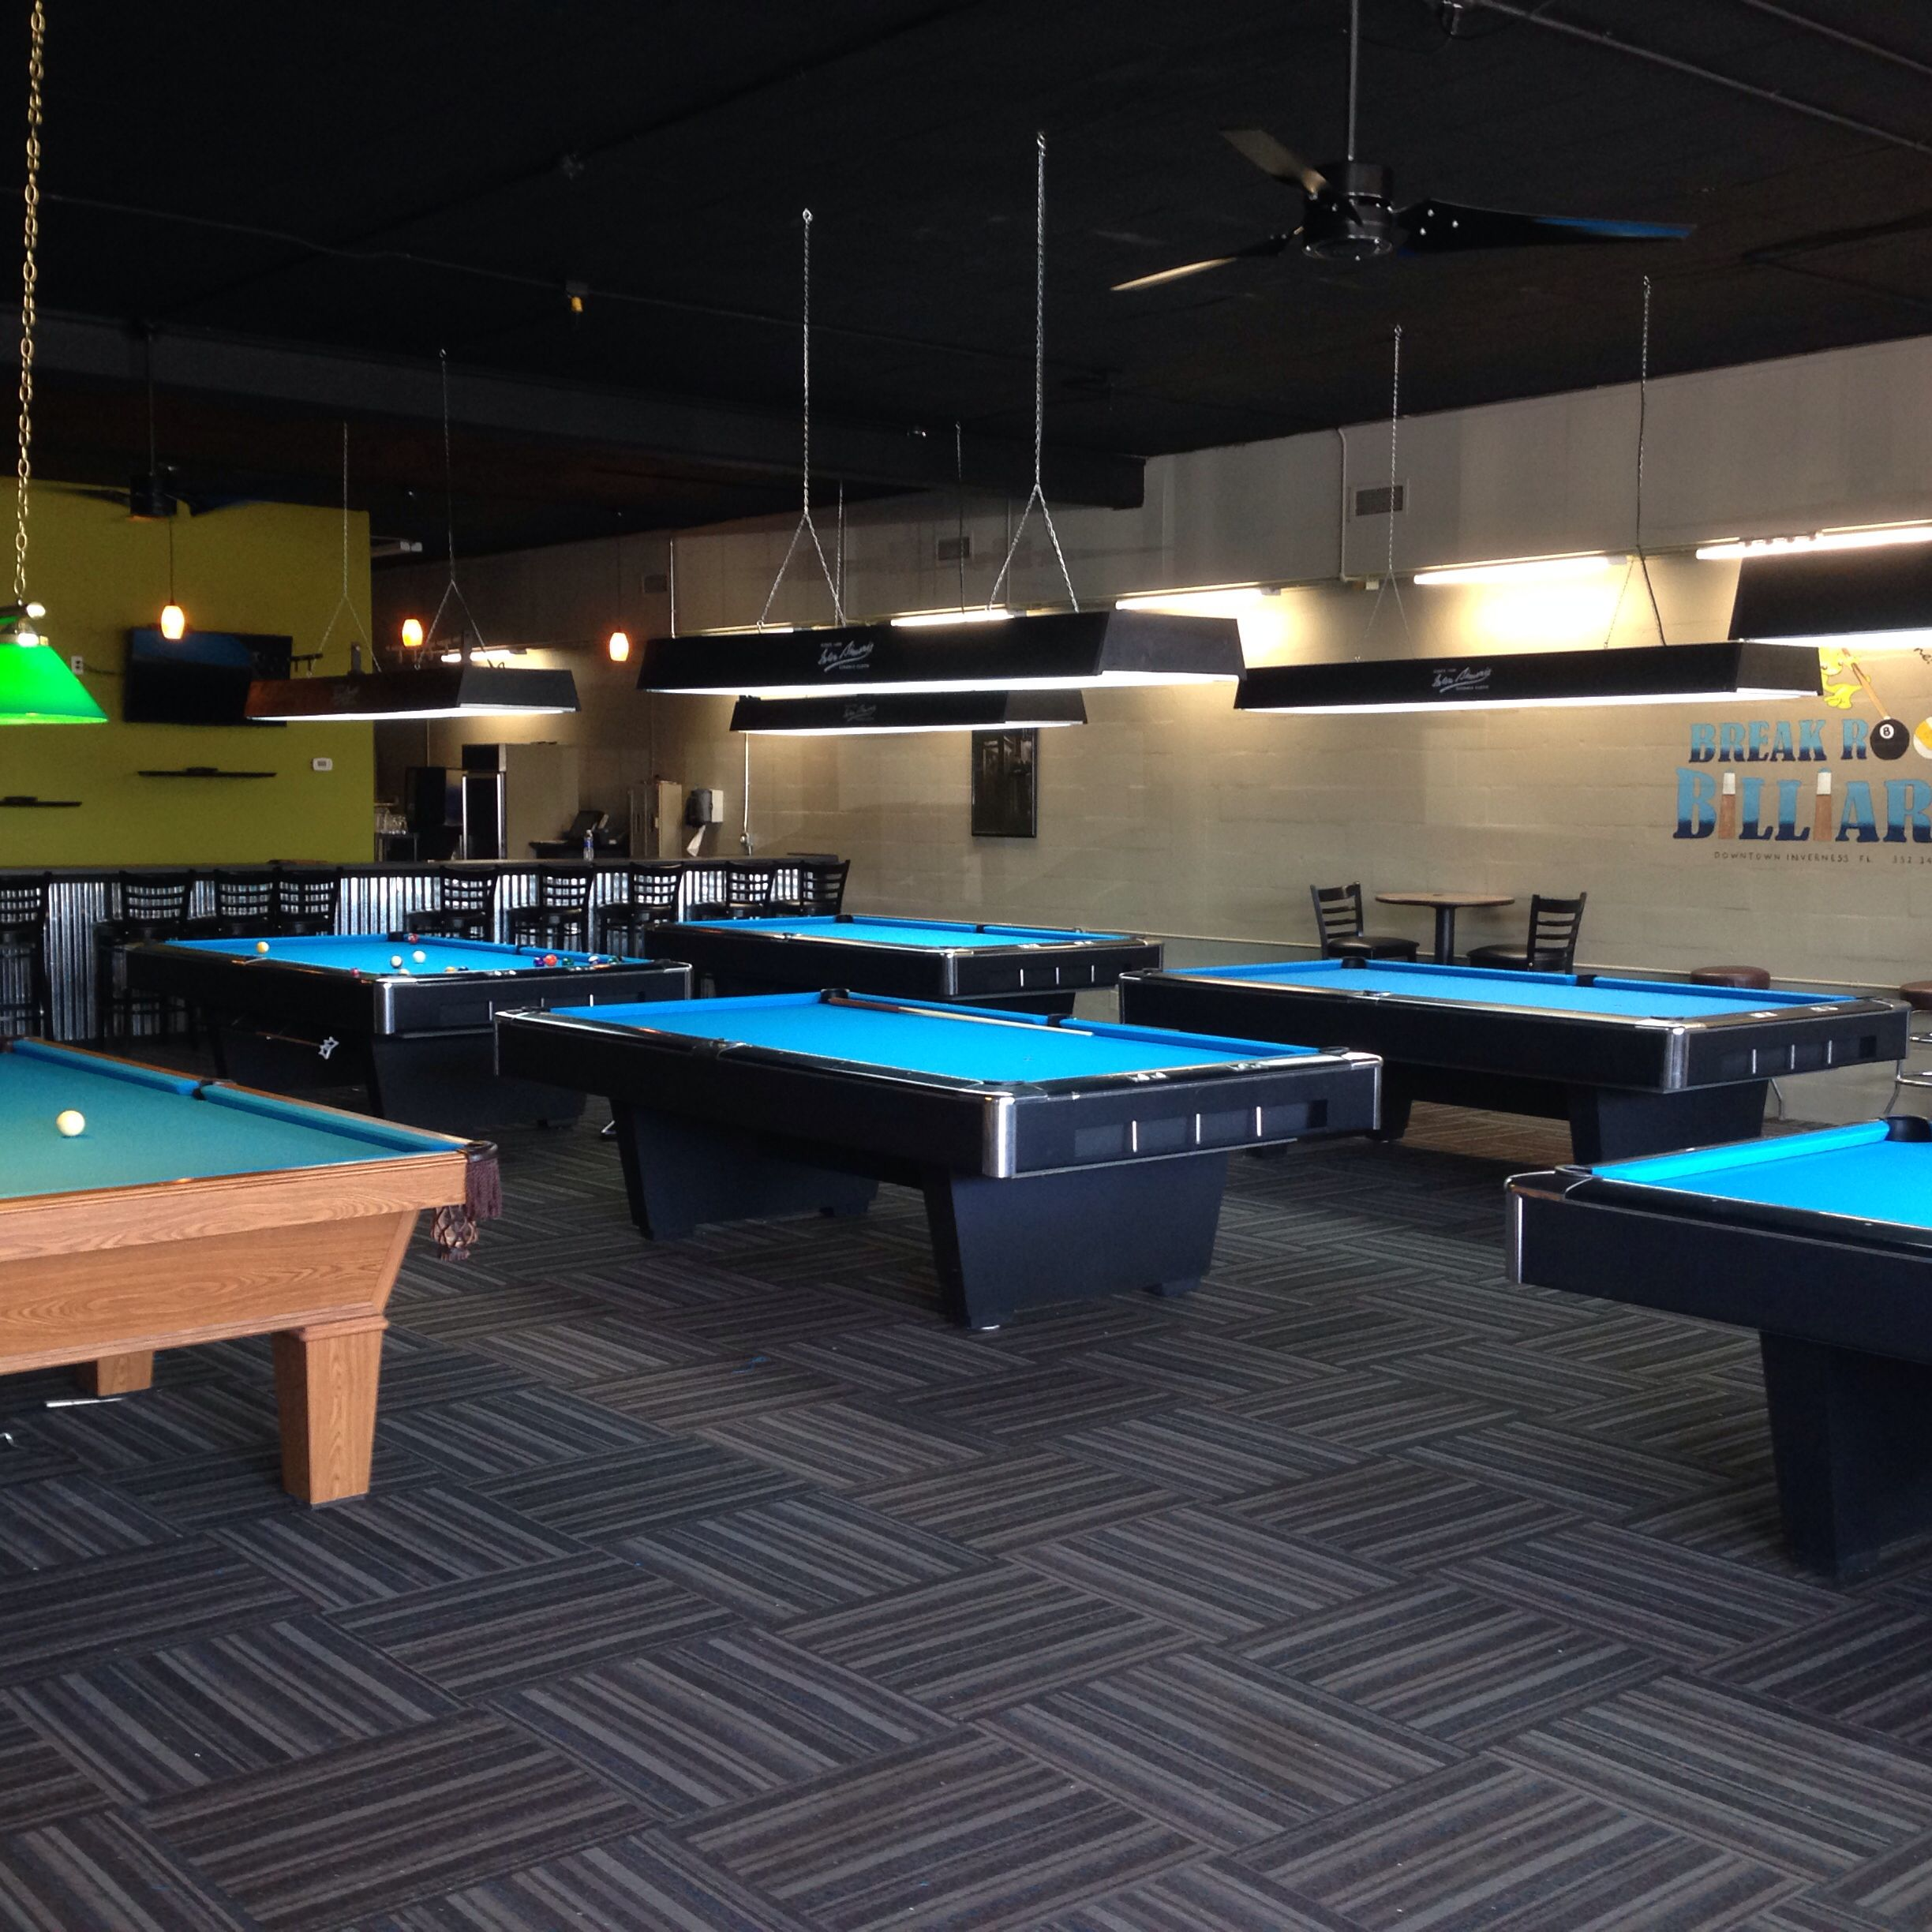 Break Time Billiards Inverness Florida Pool Tables Movers - Pool table movers delaware